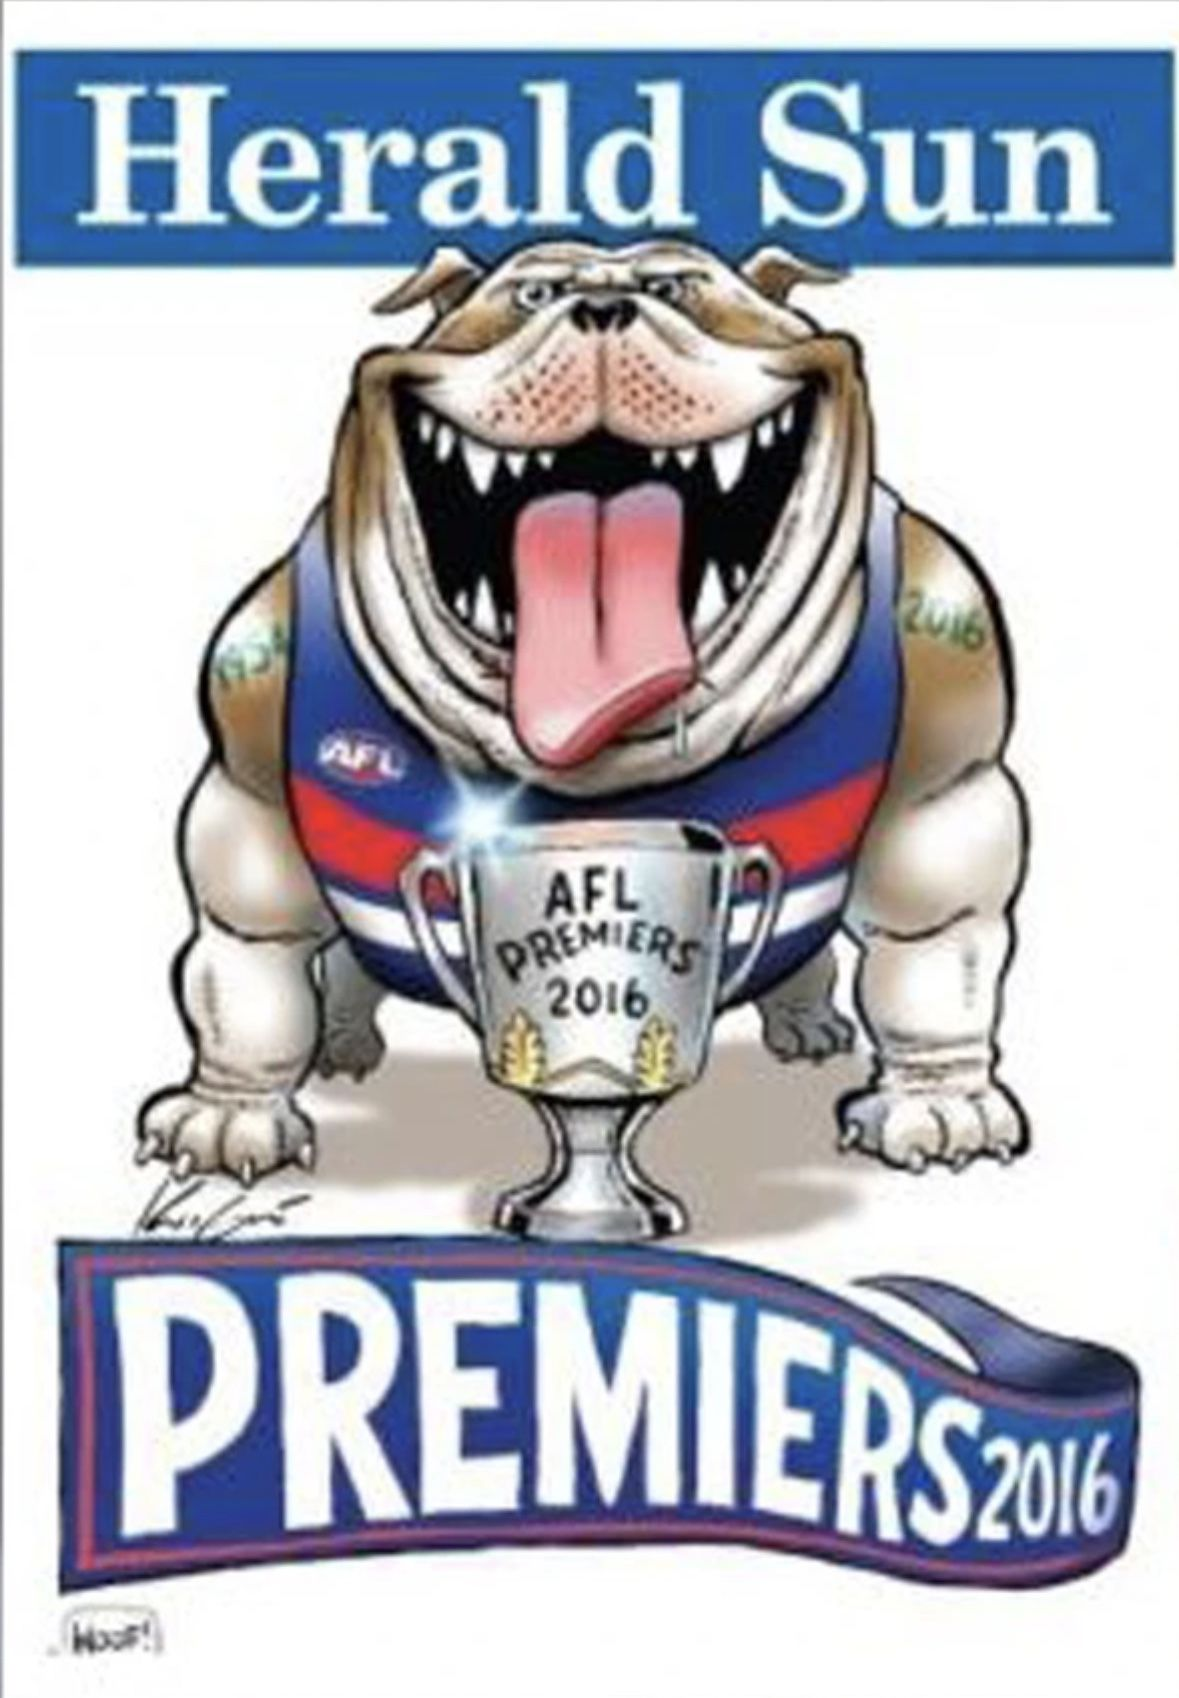 Pin By Dani Parisi On Vfl Afl Premiership Posters In 2020 Western Bulldogs Afl Bulldog